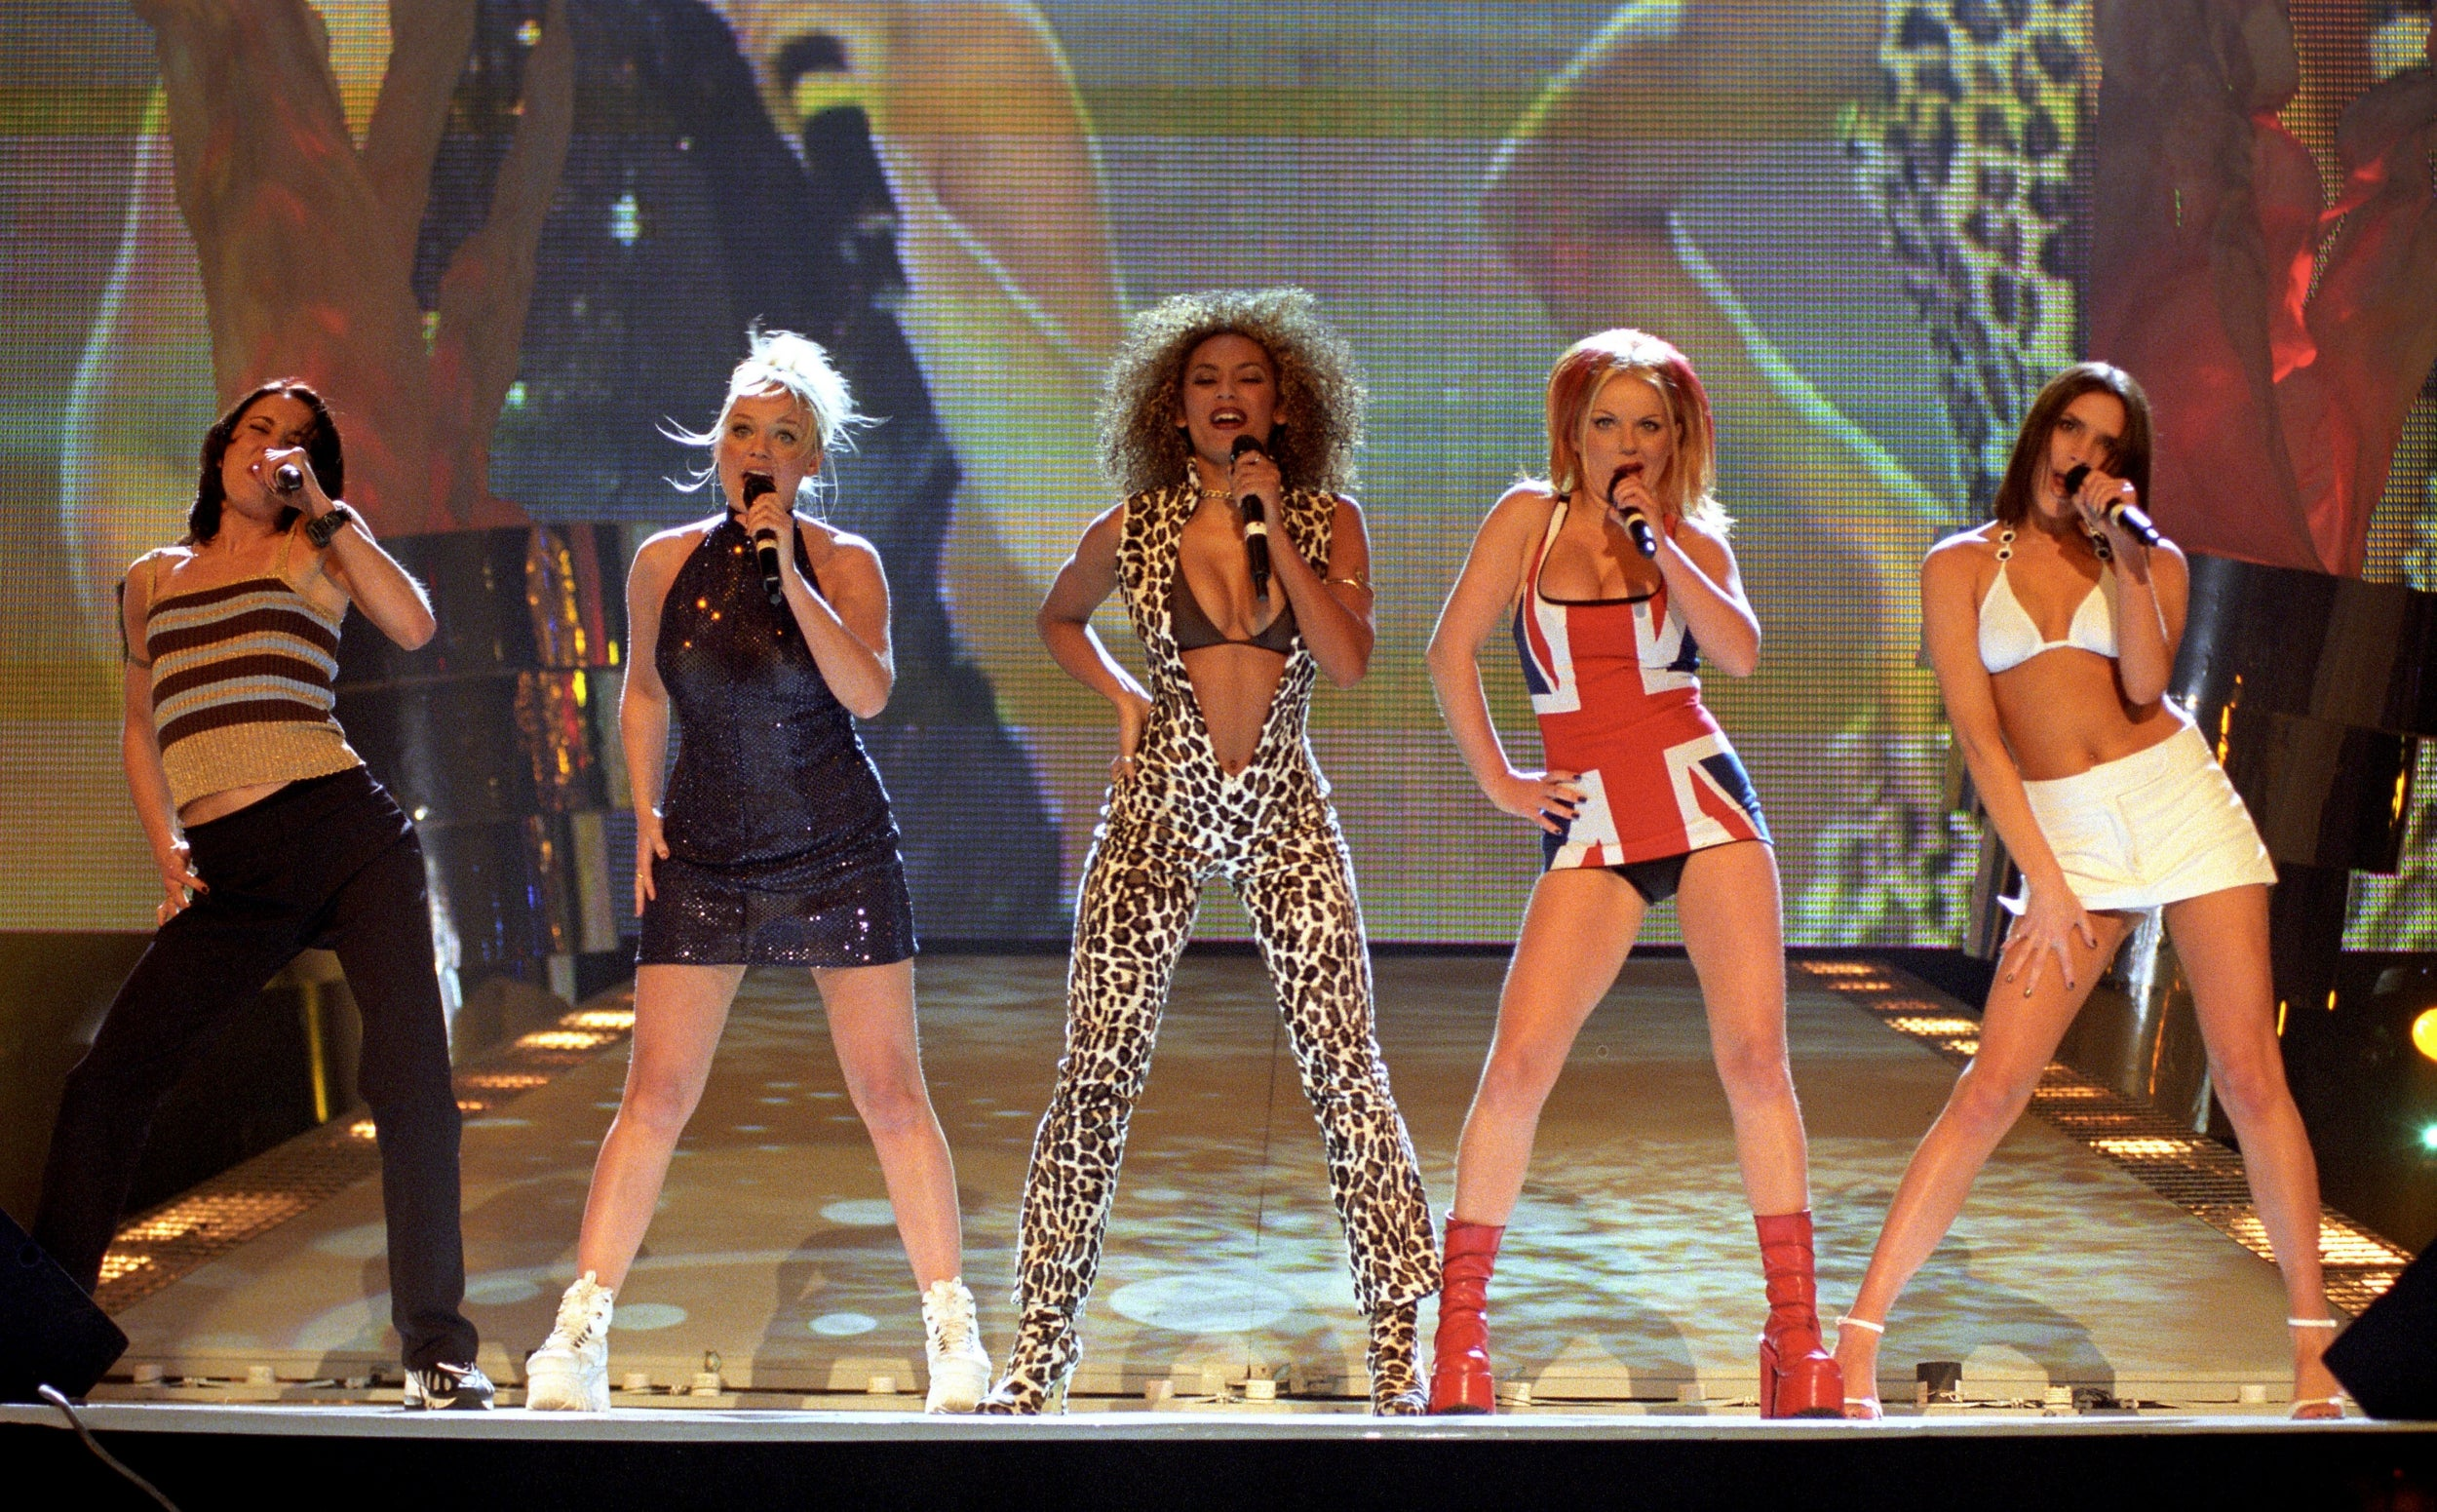 Spice Girls at Wembley Stadium, review: Less glitter and